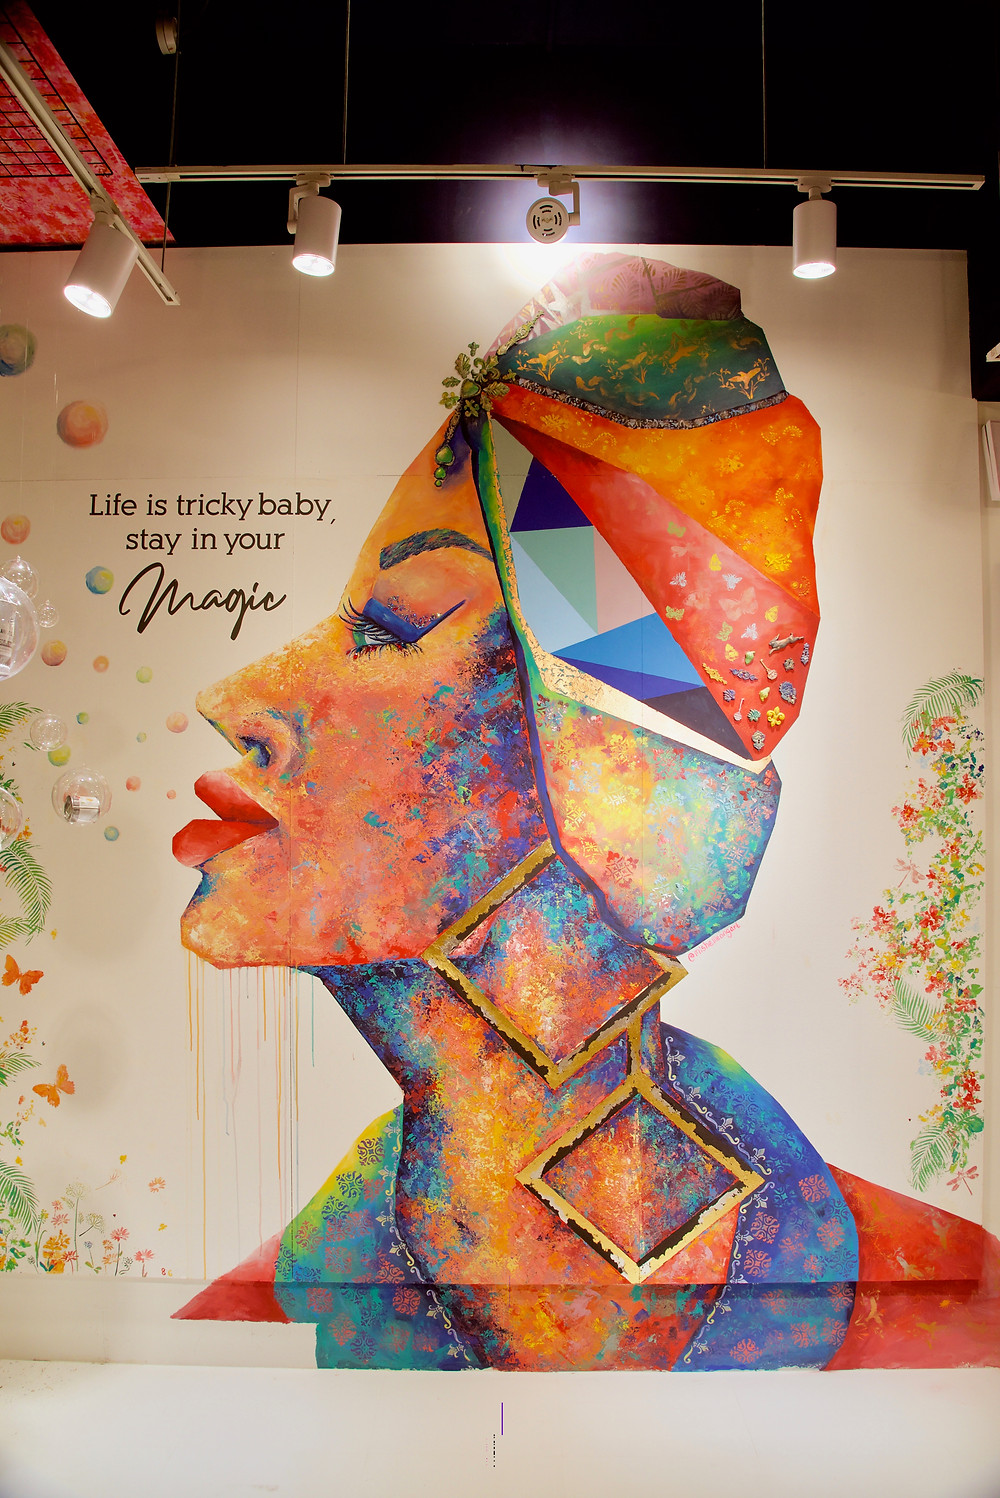 Mural Art by Mishell Leong